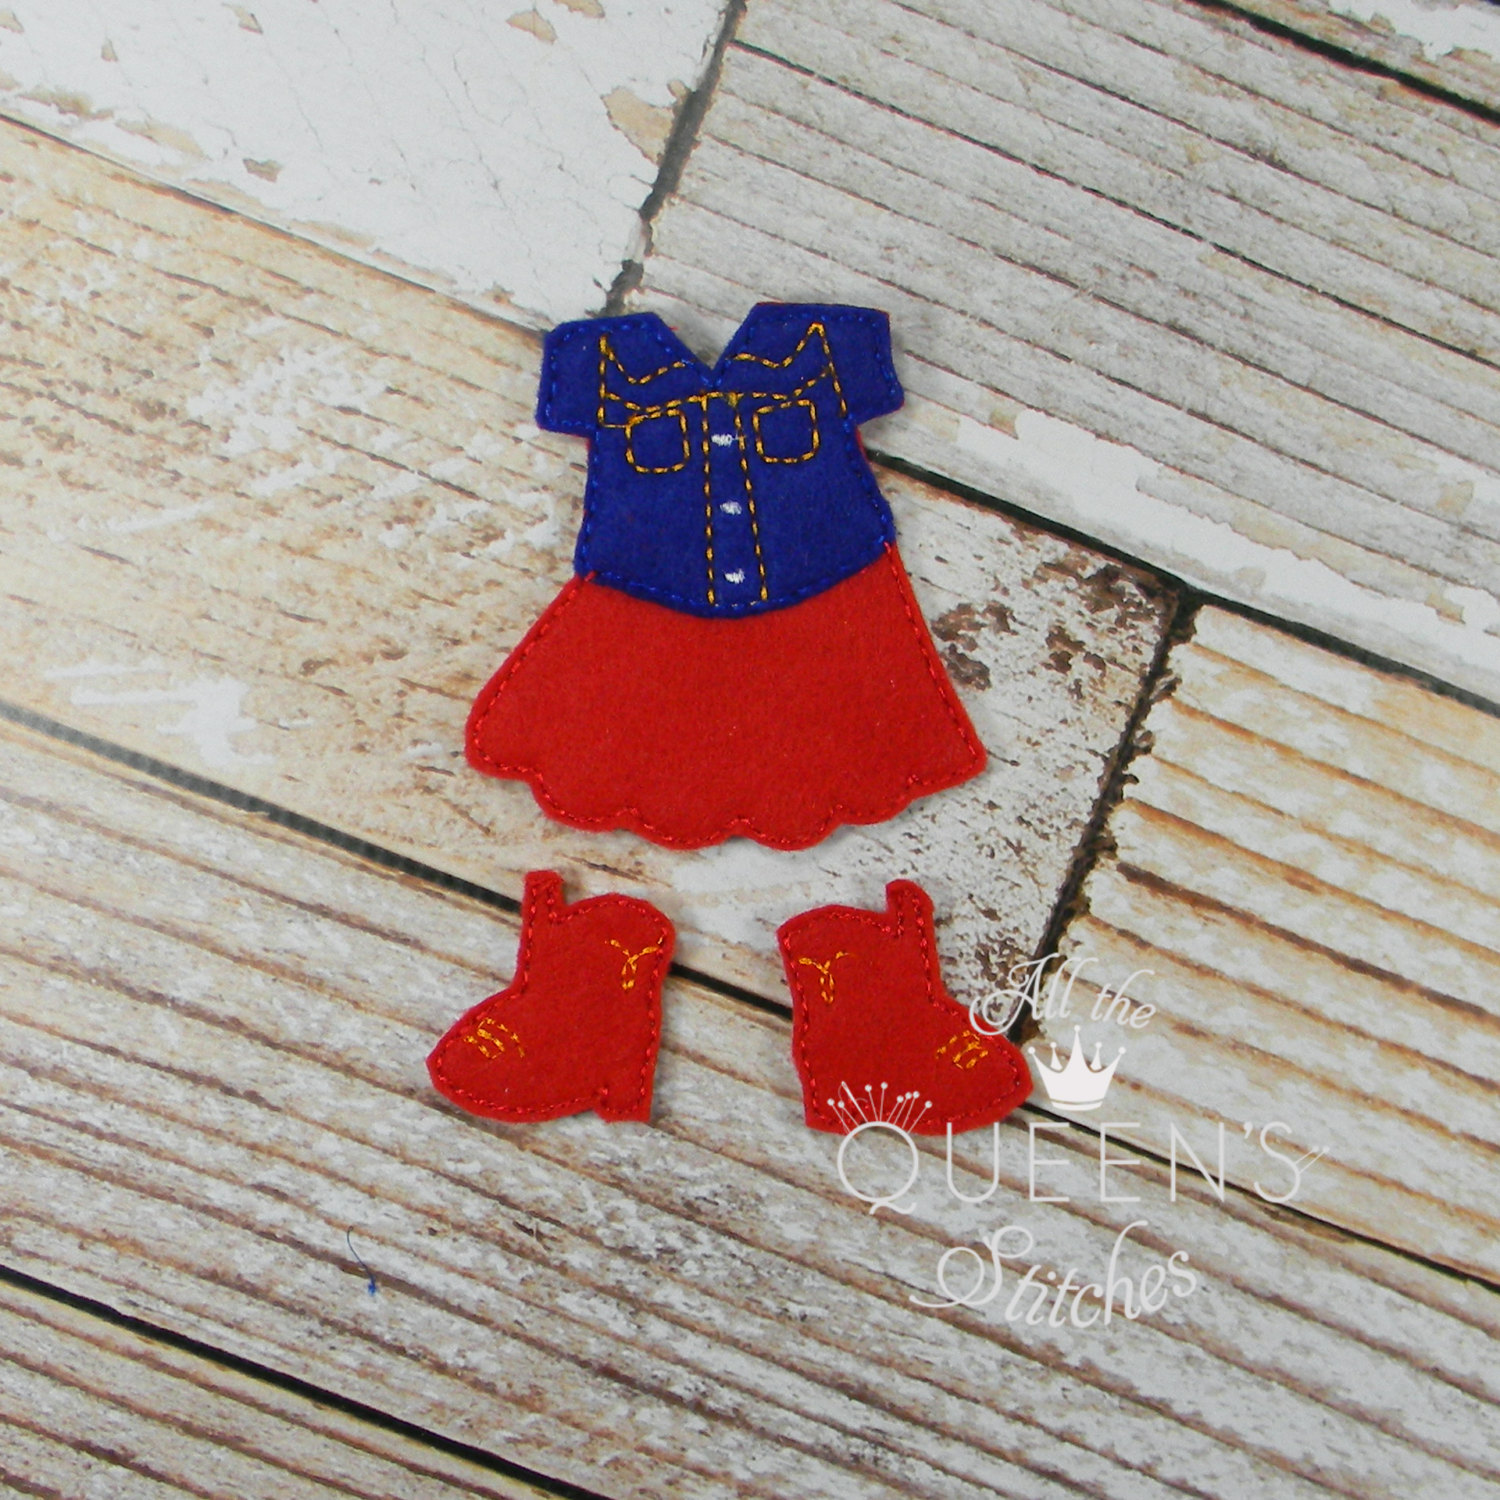 c6bdd3643 Red and Blue Cowgirl Country Girl Felt Non Paper Doll Outfit ...